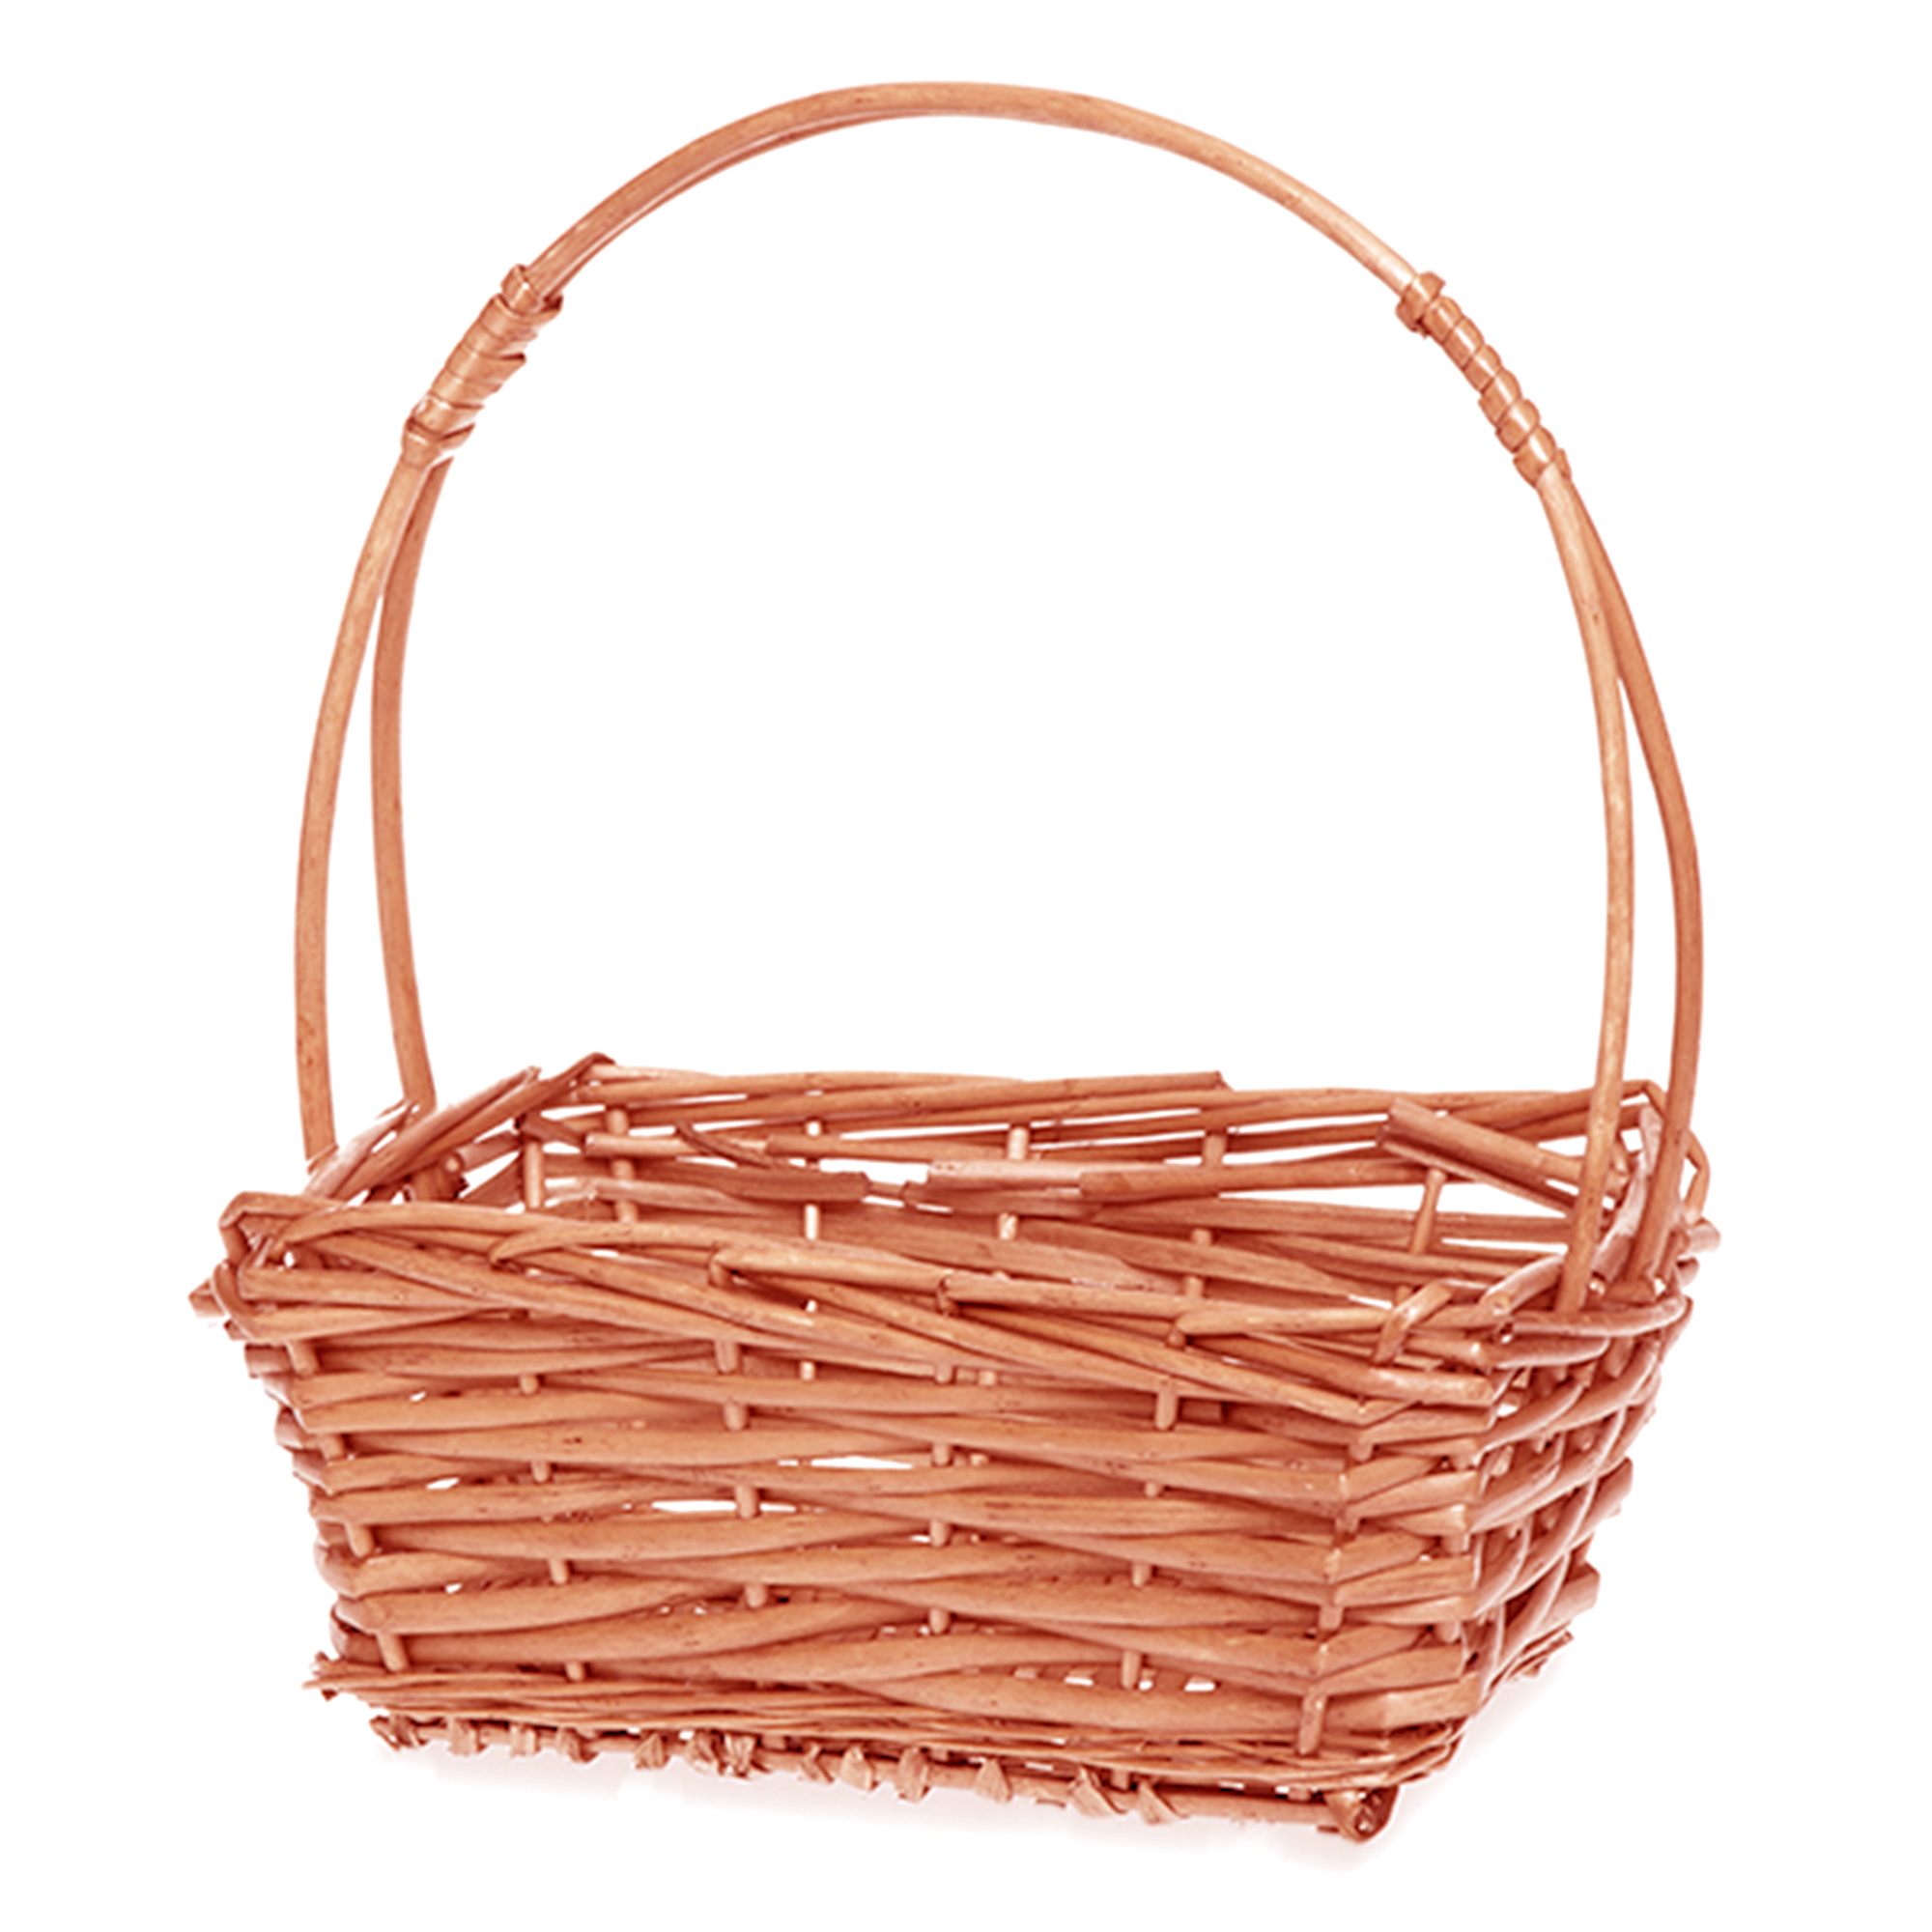 Willow Rectangular Handle Basket - Honey 9in